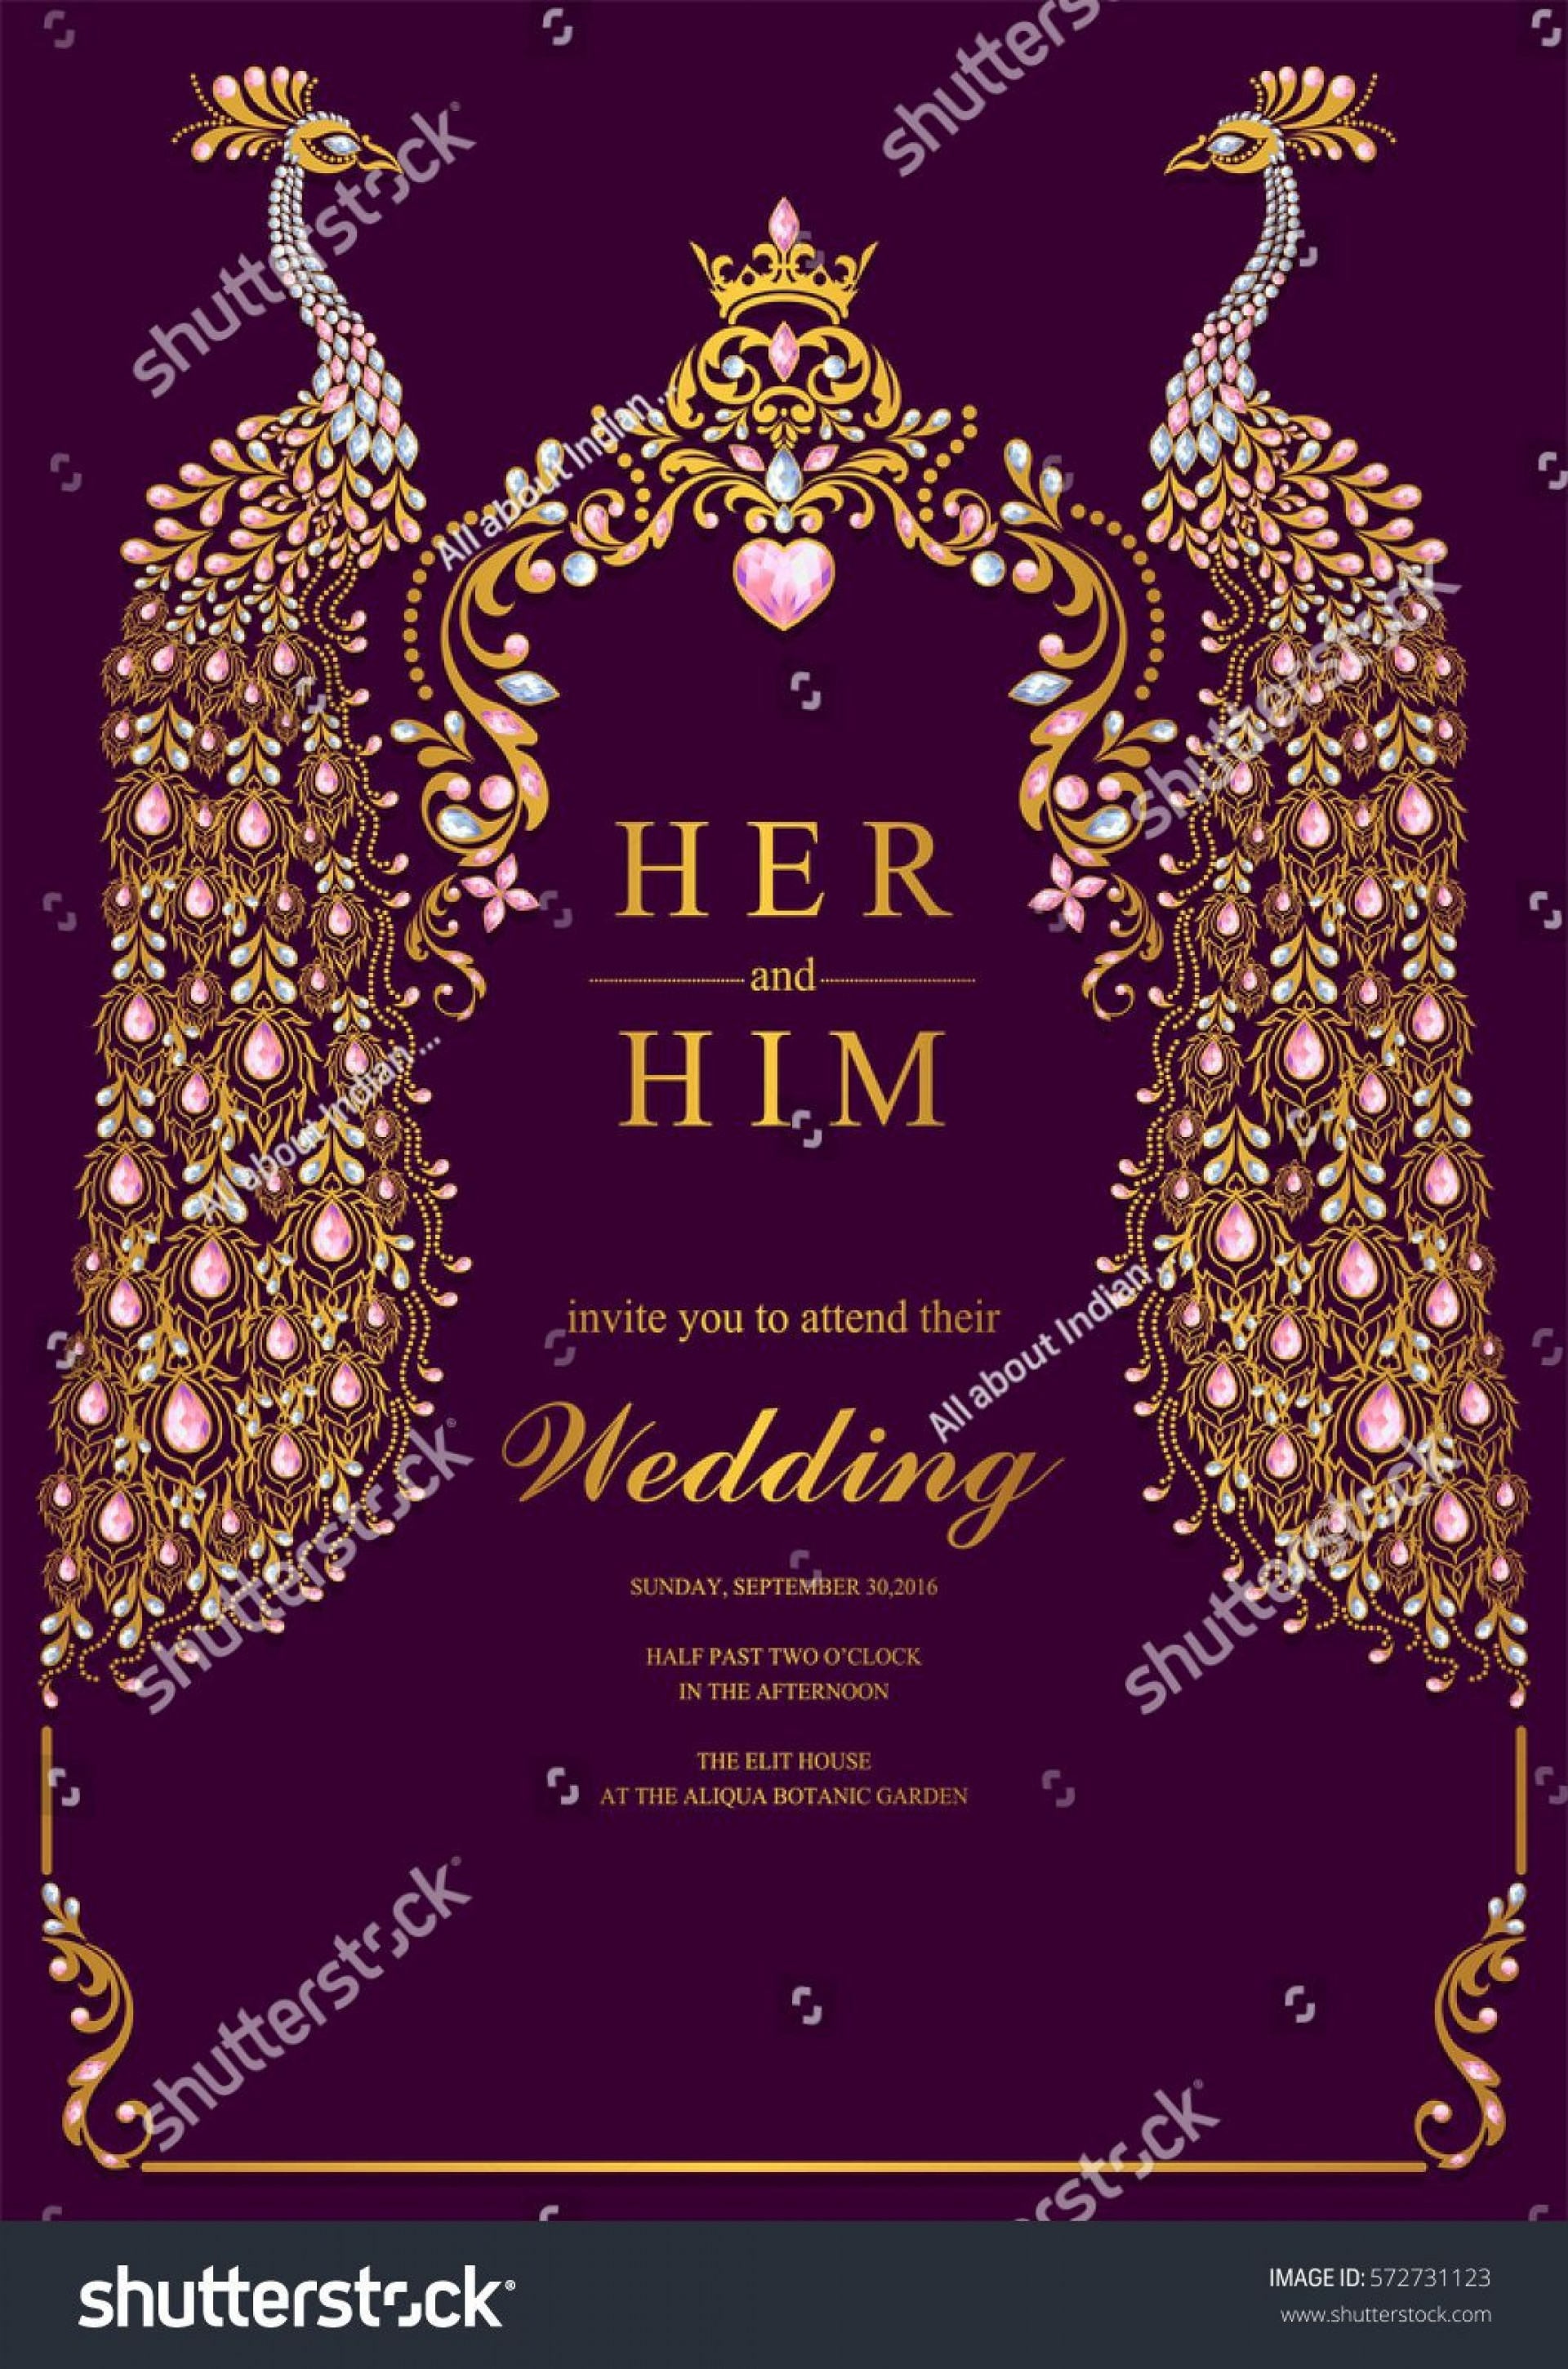 000 Beautiful Indian Wedding Invitation Template Sample  Psd Free Download Marriage Online For Friend1920